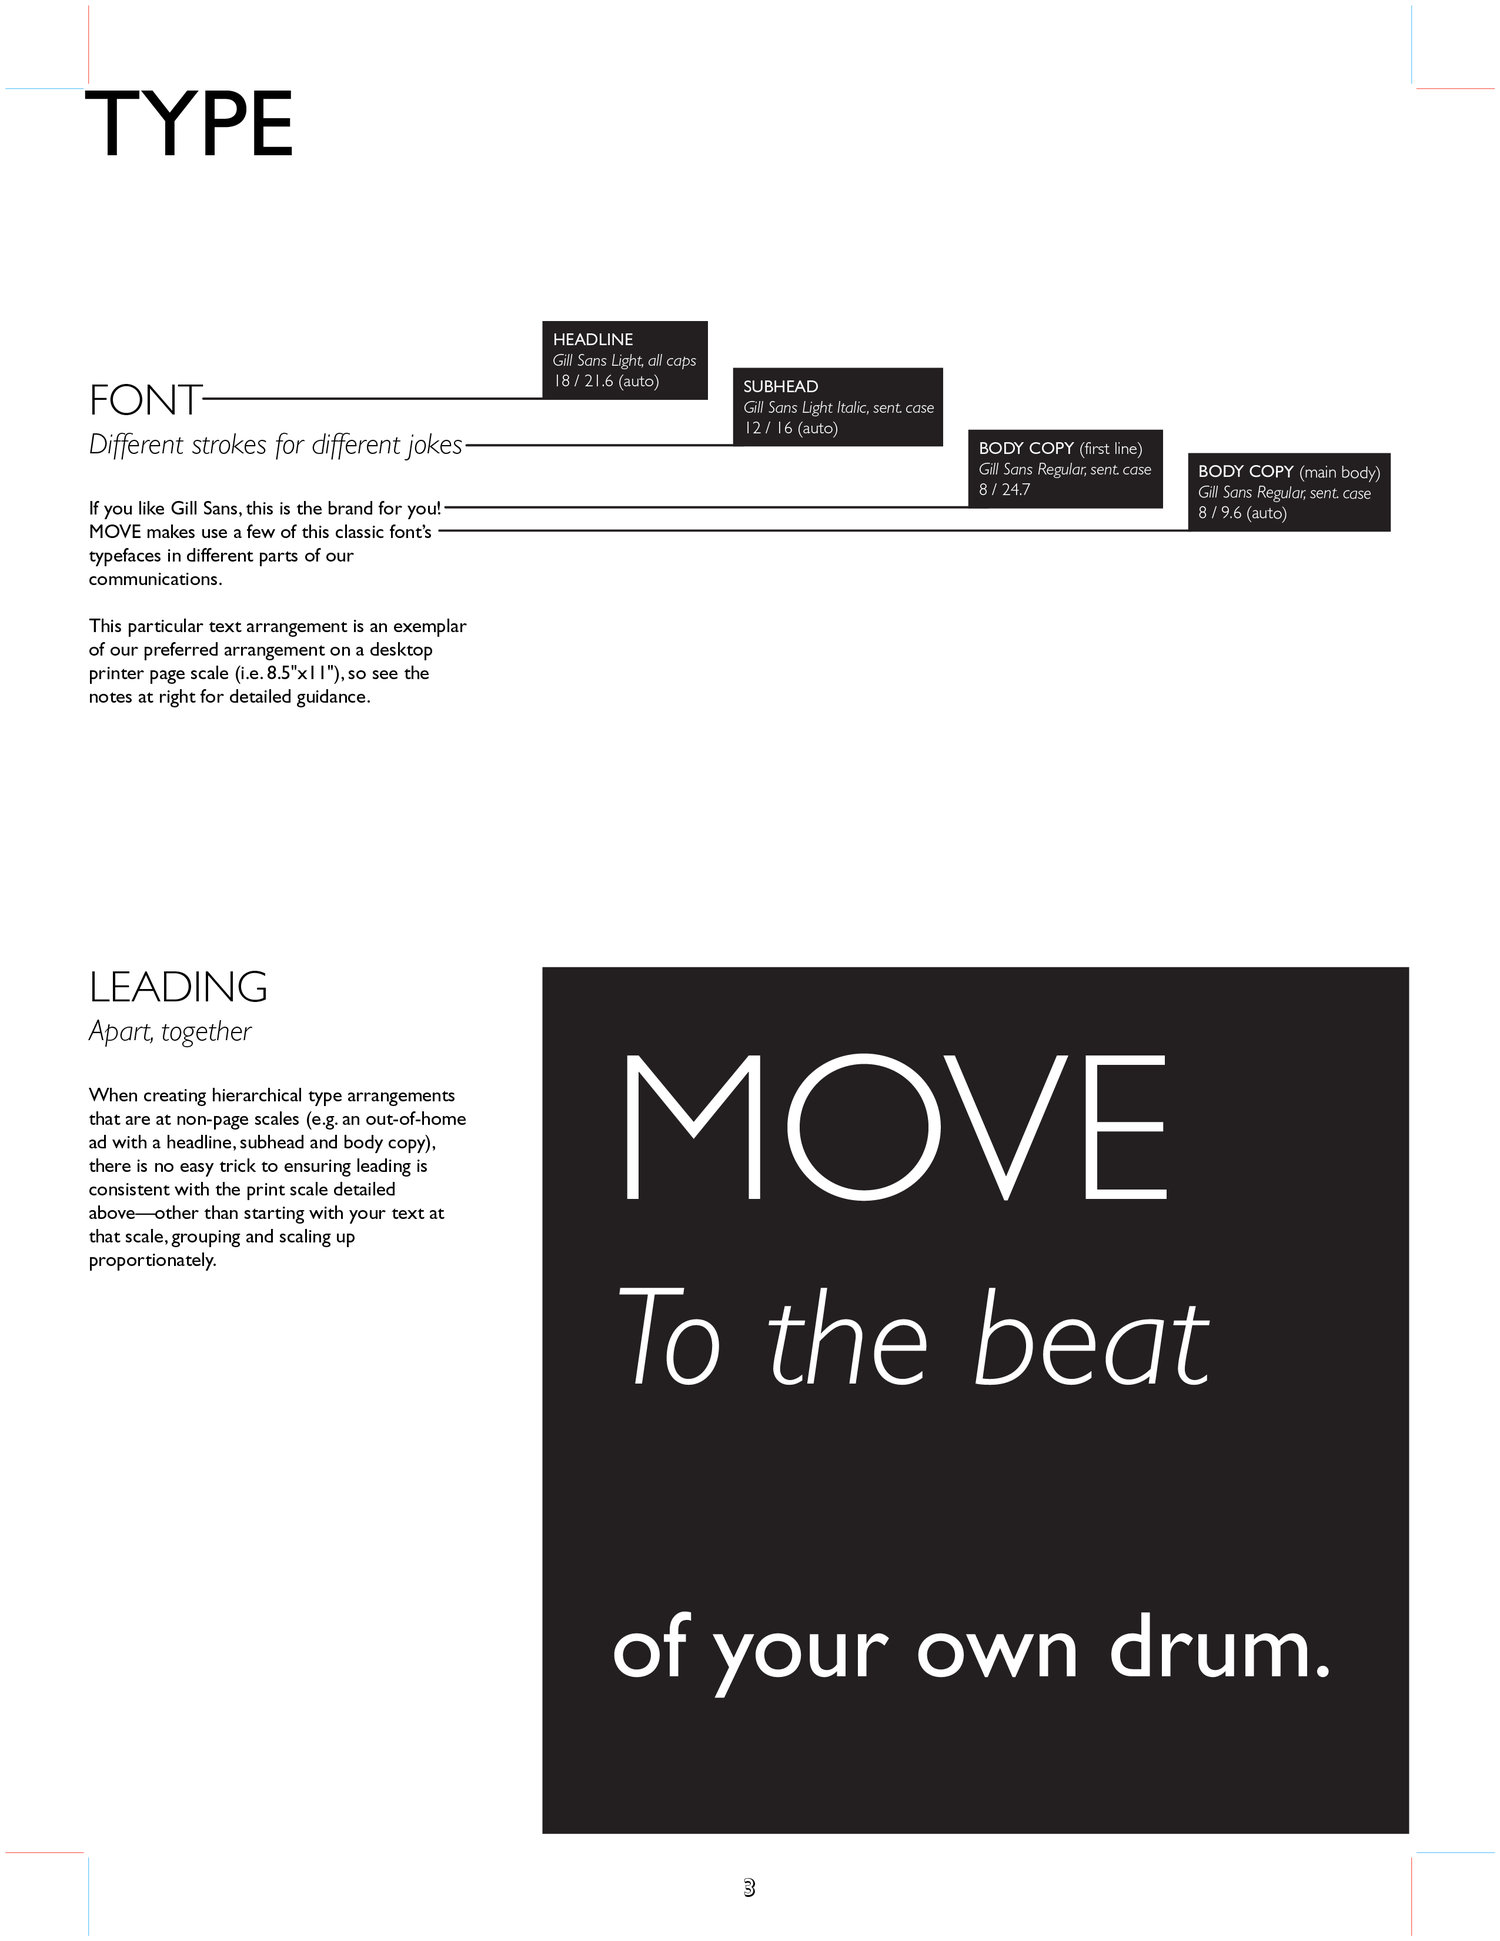 MOVE+Brand+Guidelines-04.jpg